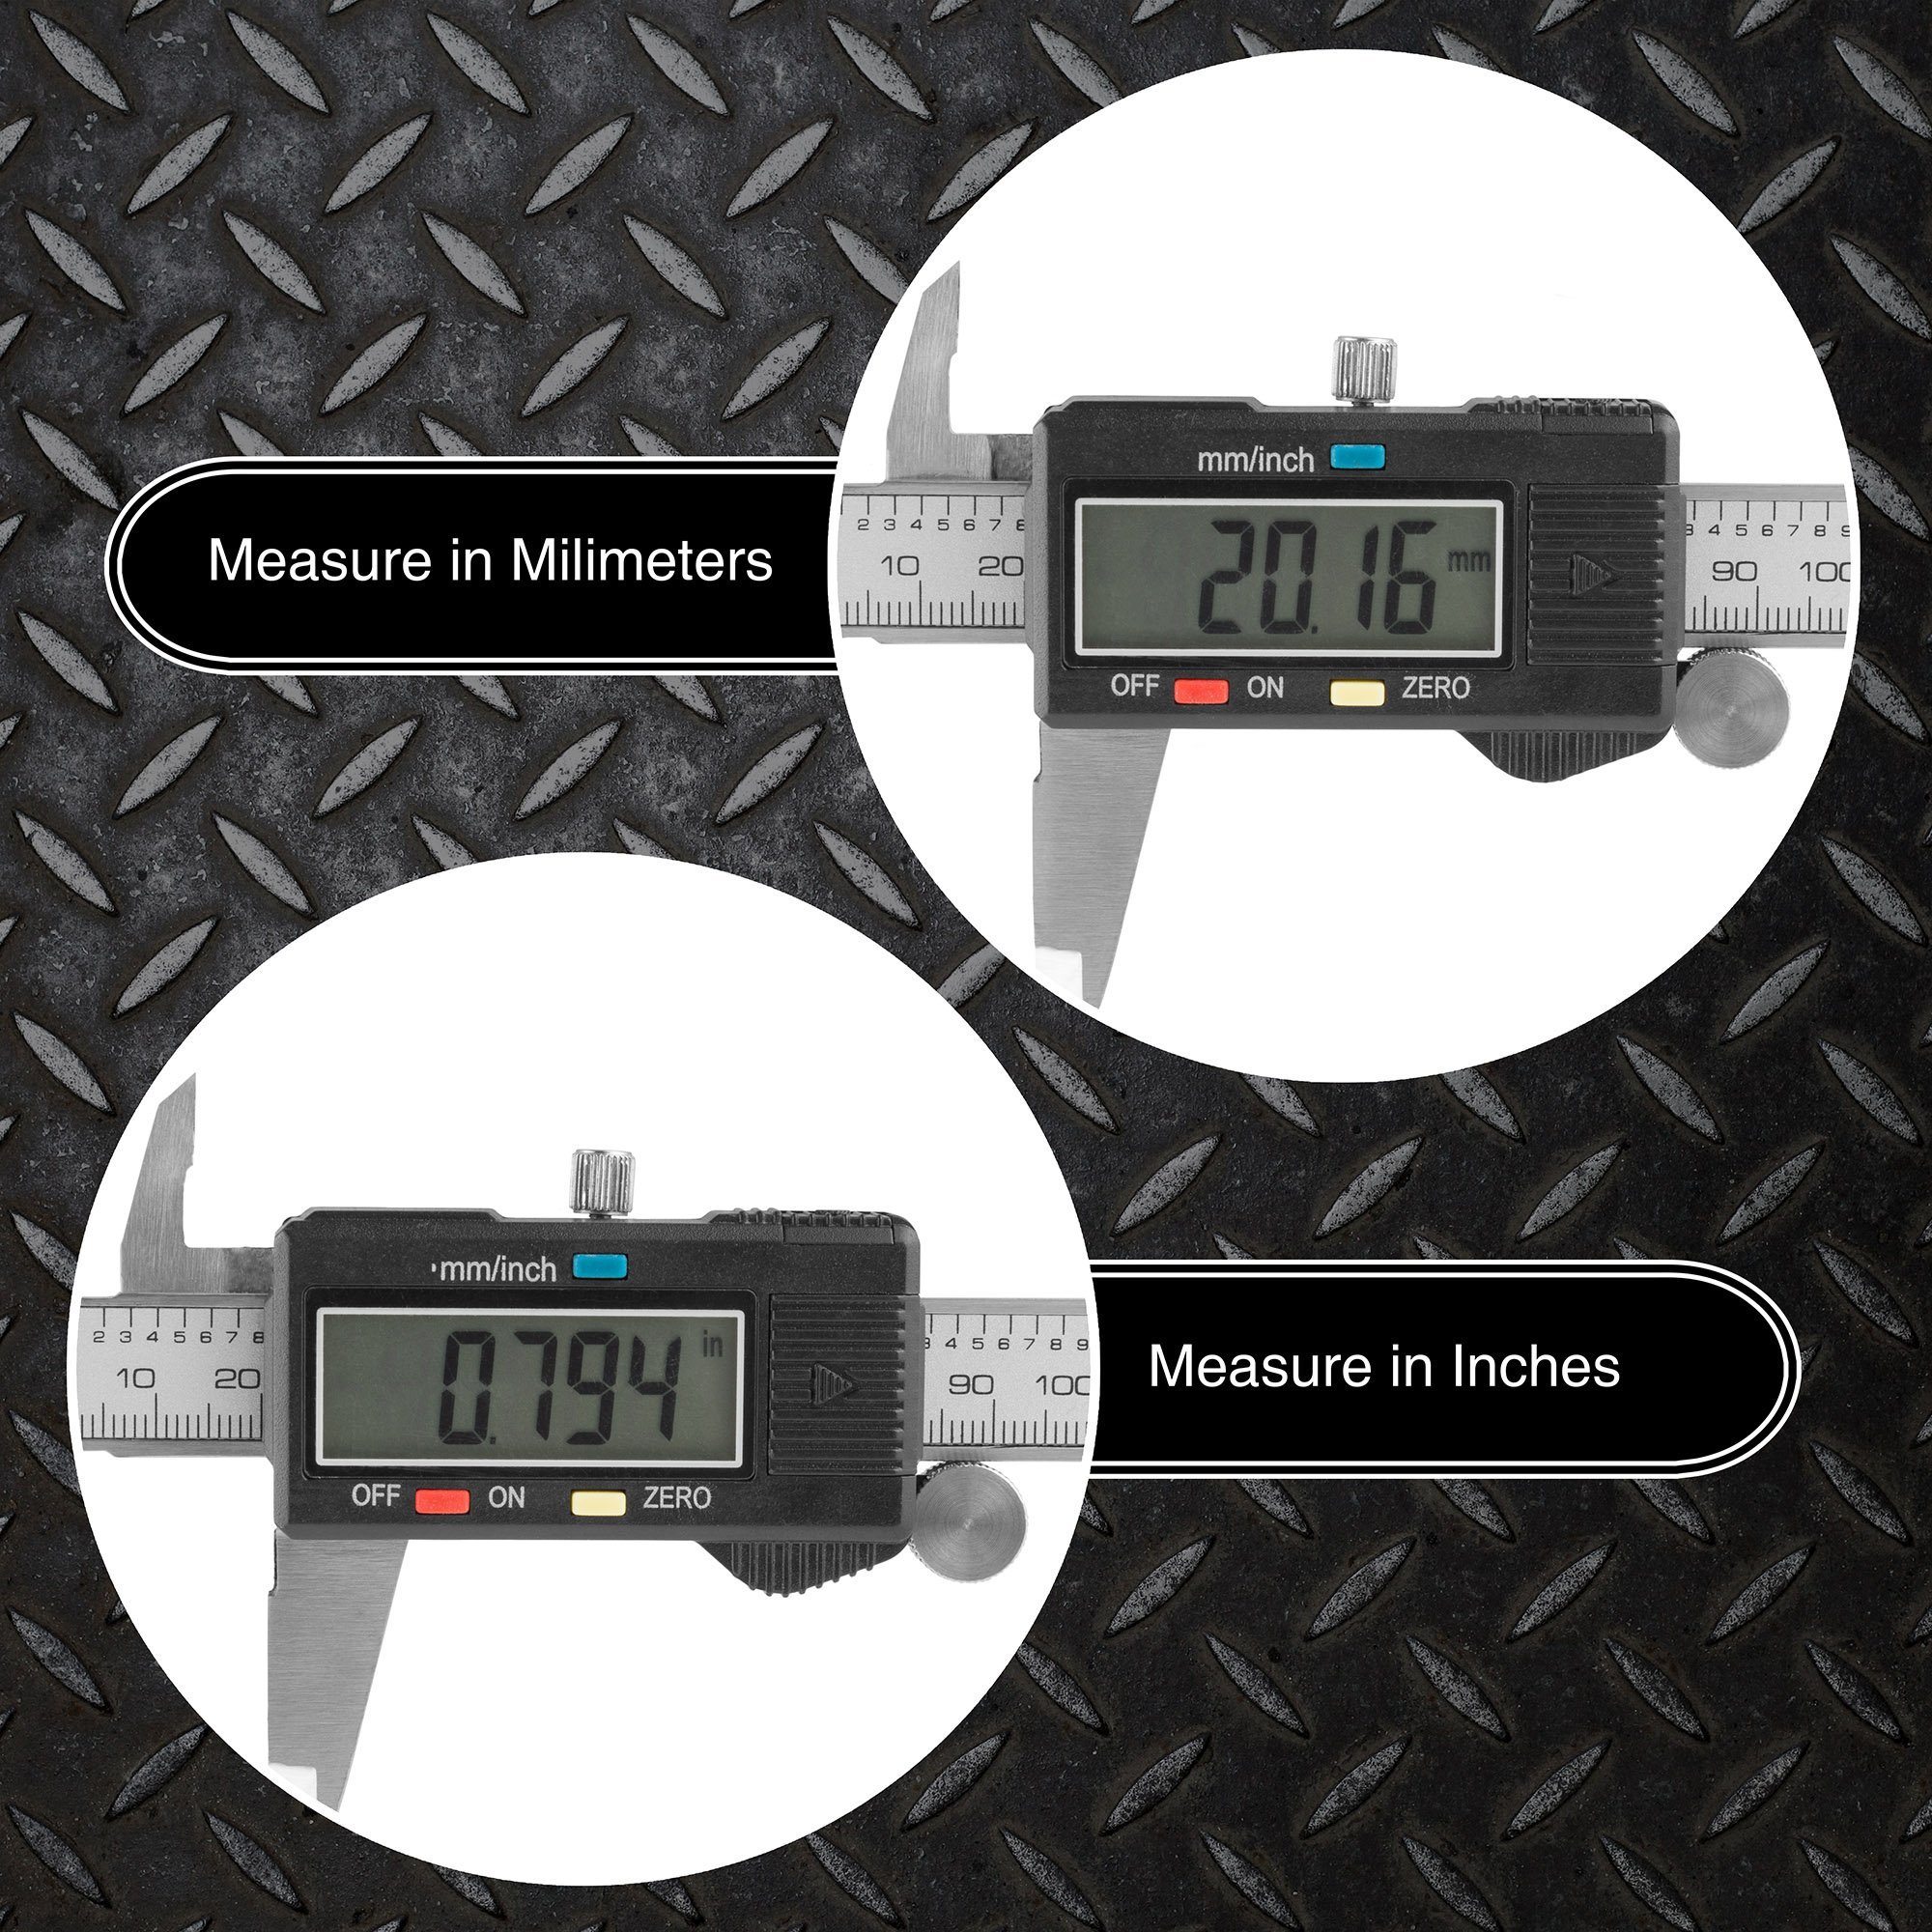 Electronic Digital Caliper, Stainless Steel with Extra Large LCD Screen and Inch/Metric Conversion- Measures Up to 6 Inch (0-150mm) by Stalwart by Stalwart (Image #4)